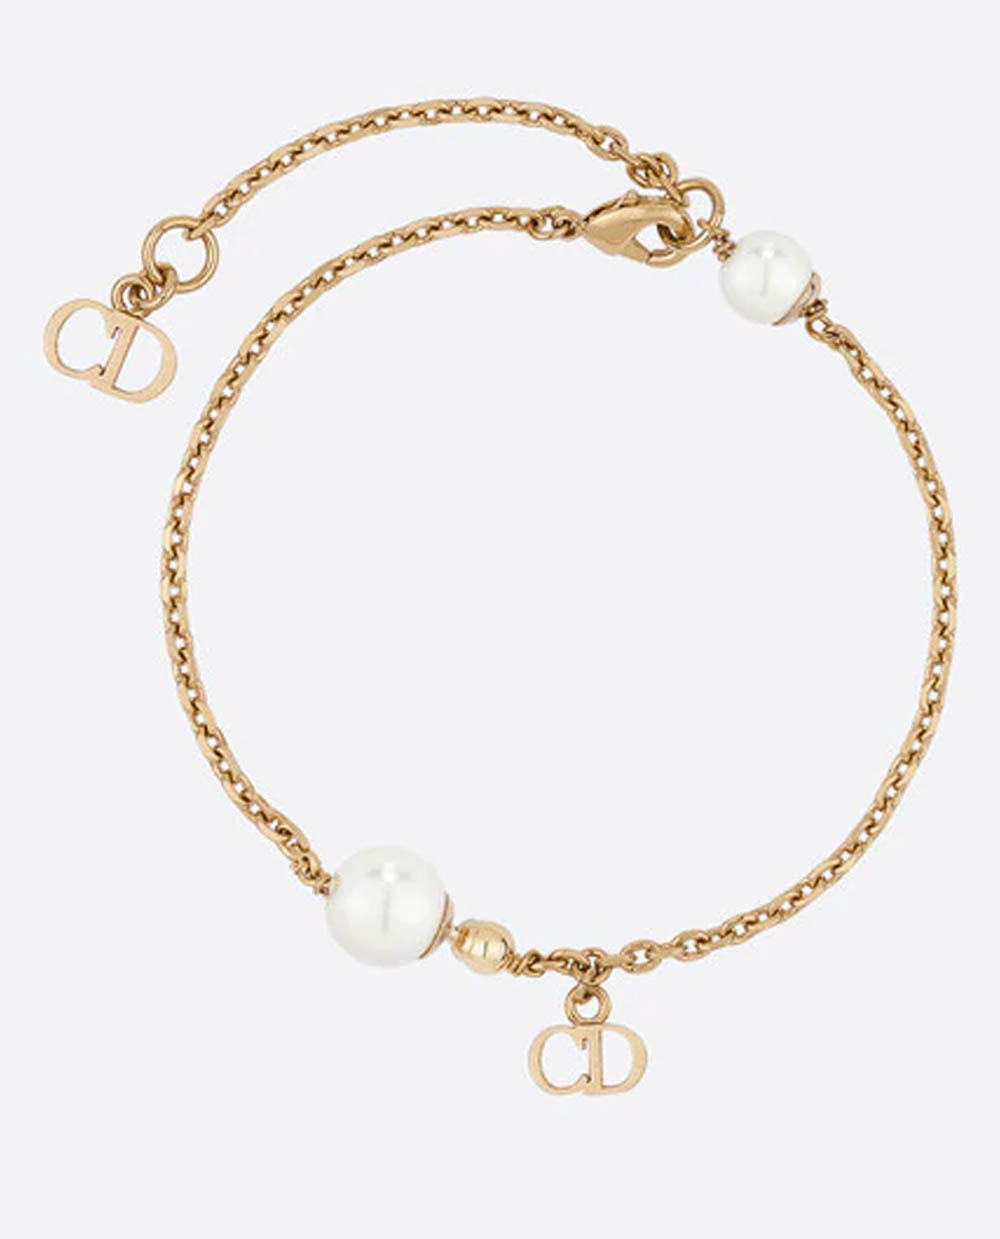 The-best-luxury-gifts-for-her-women-Dior-LA-PETITE-TRIBALE-BRACELET-pearl-gold